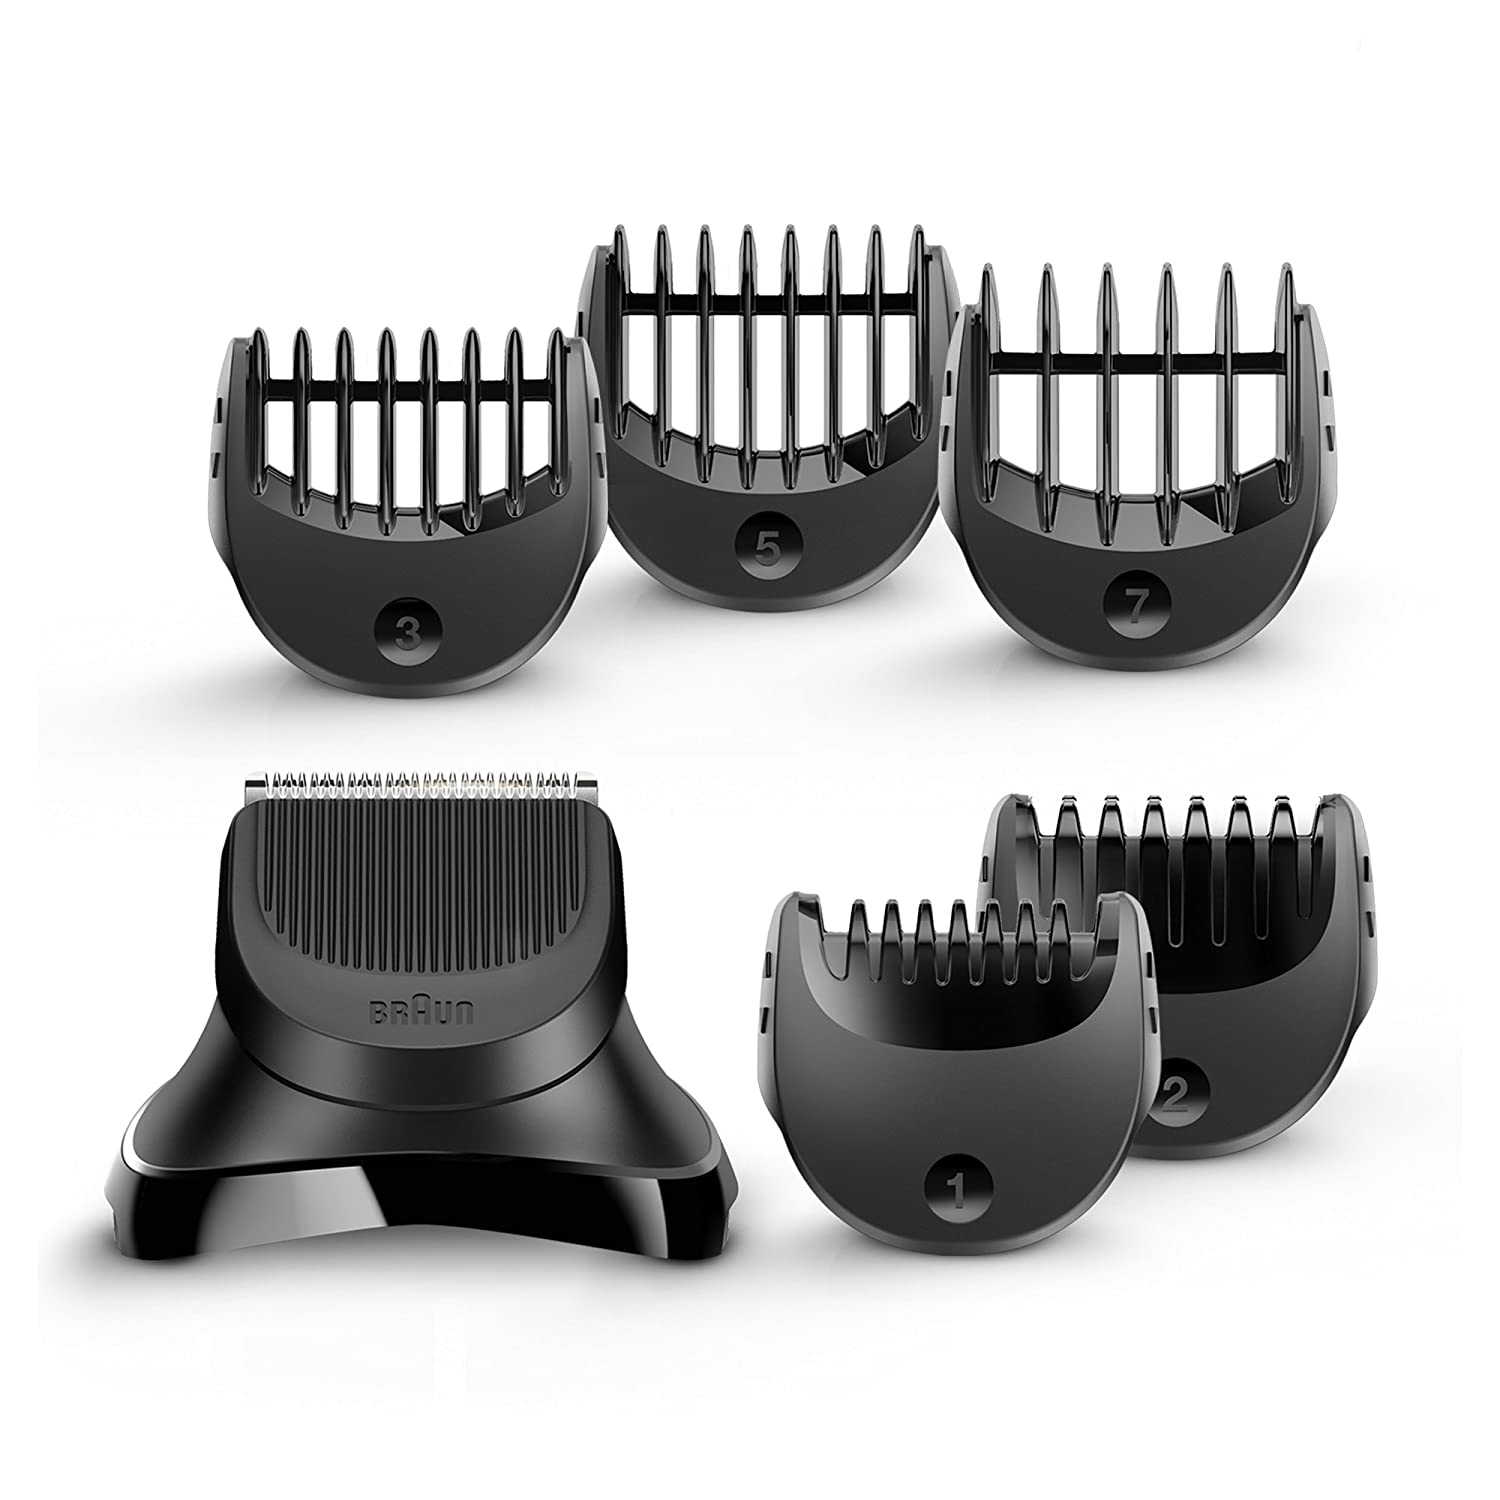 Braun BT32 Trimmer Head for Beards, with 5 Combs for Precision Trimming